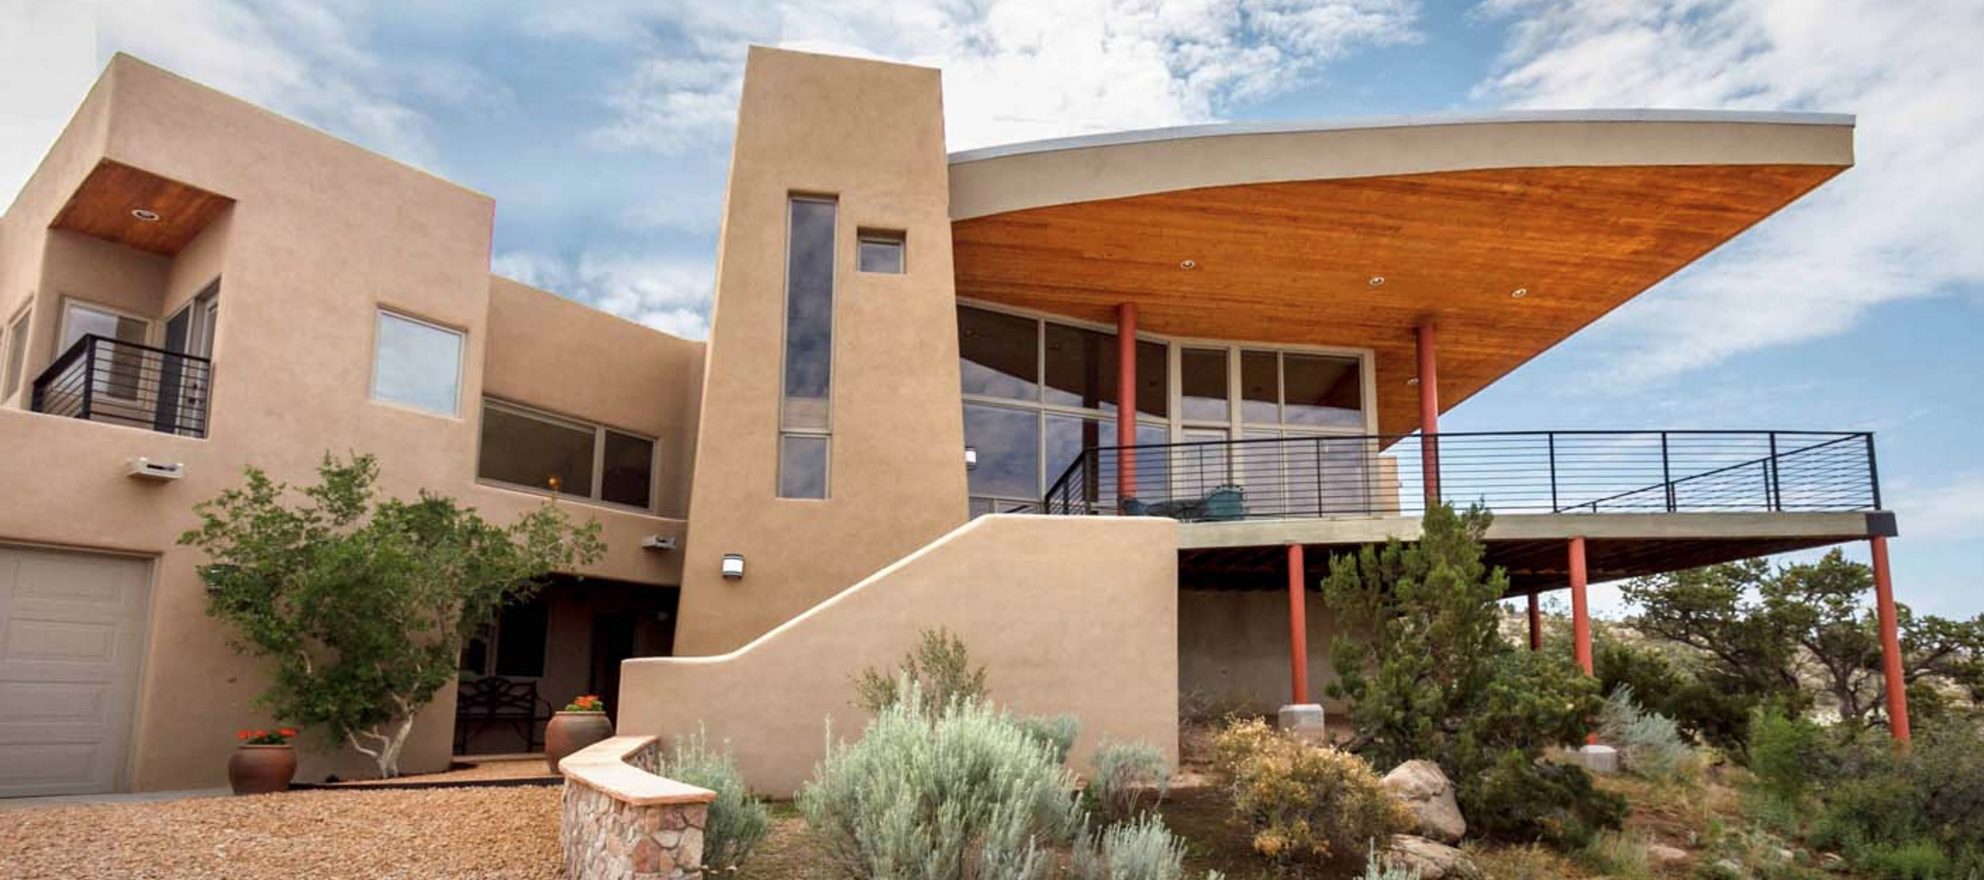 Zillow New Mexico: Home Prices and Rental Data